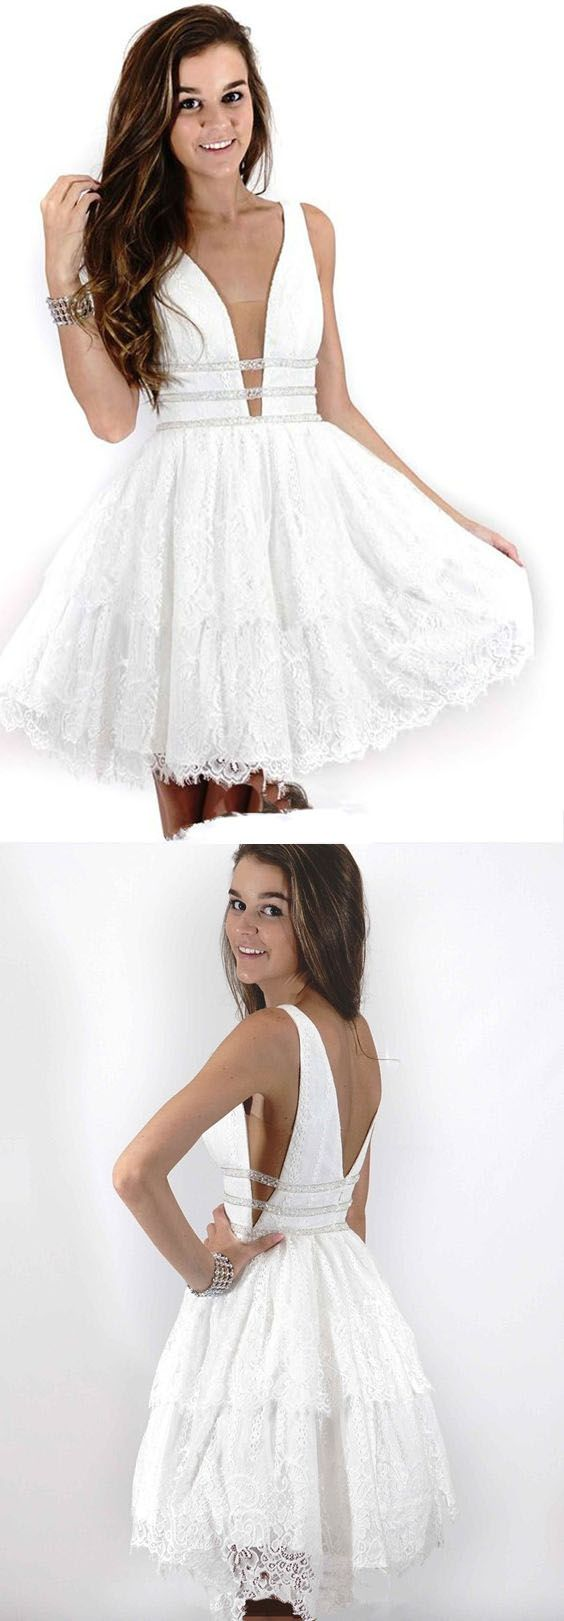 Deep Neck Short Prom Dress White Lace Homecoming Dress ,B0192